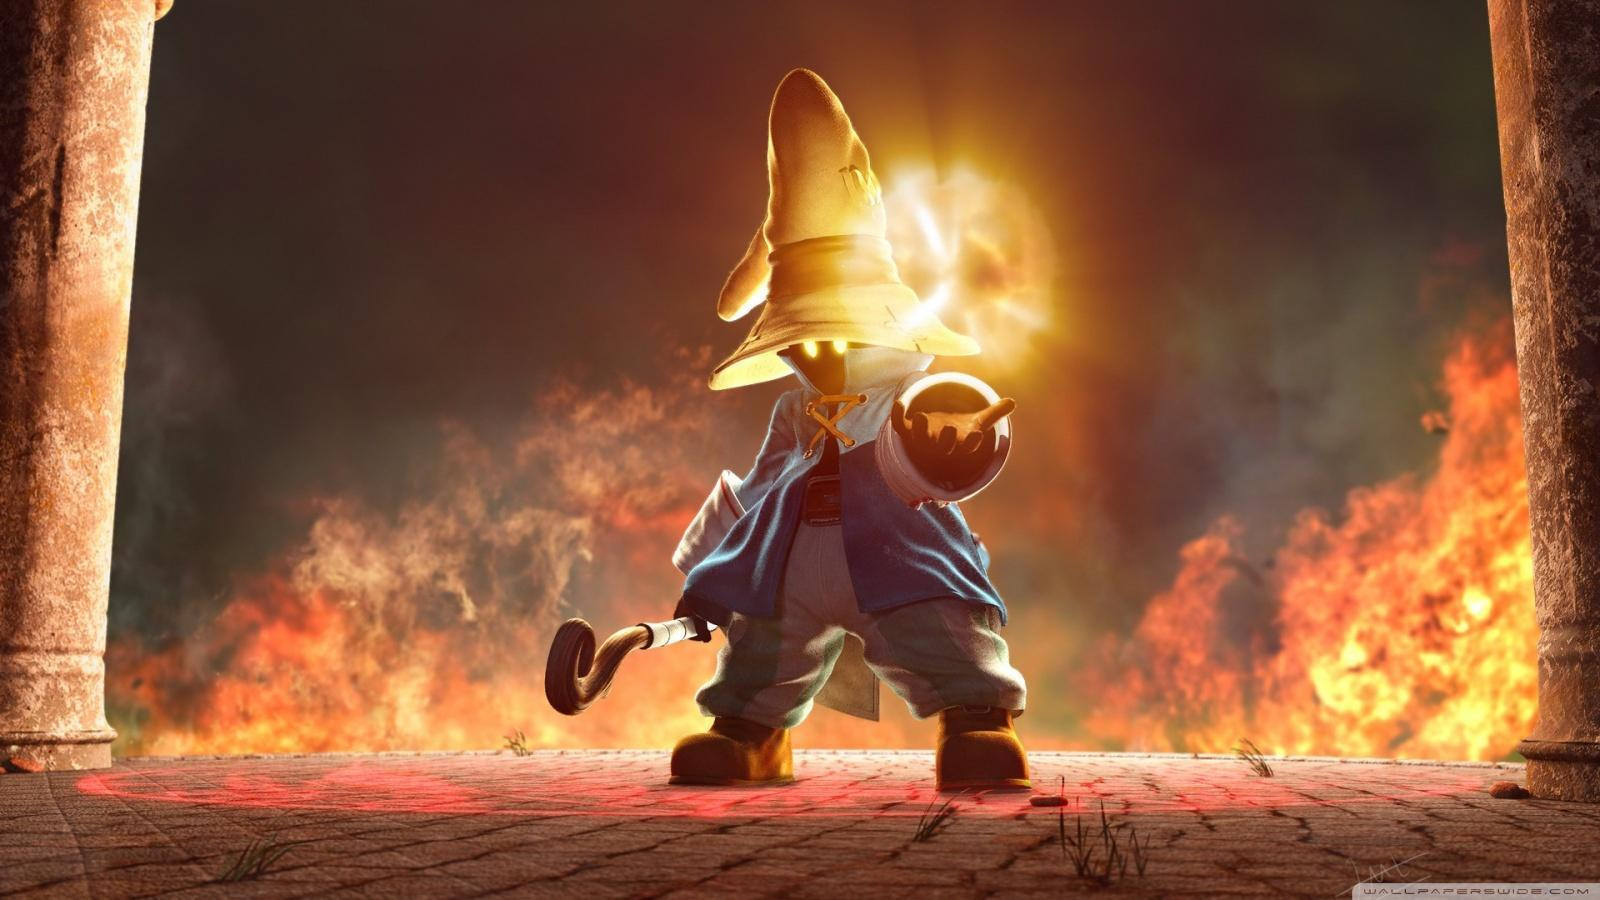 Final Fantasy IX Art HD desktop wallpapers : Widescreen : High